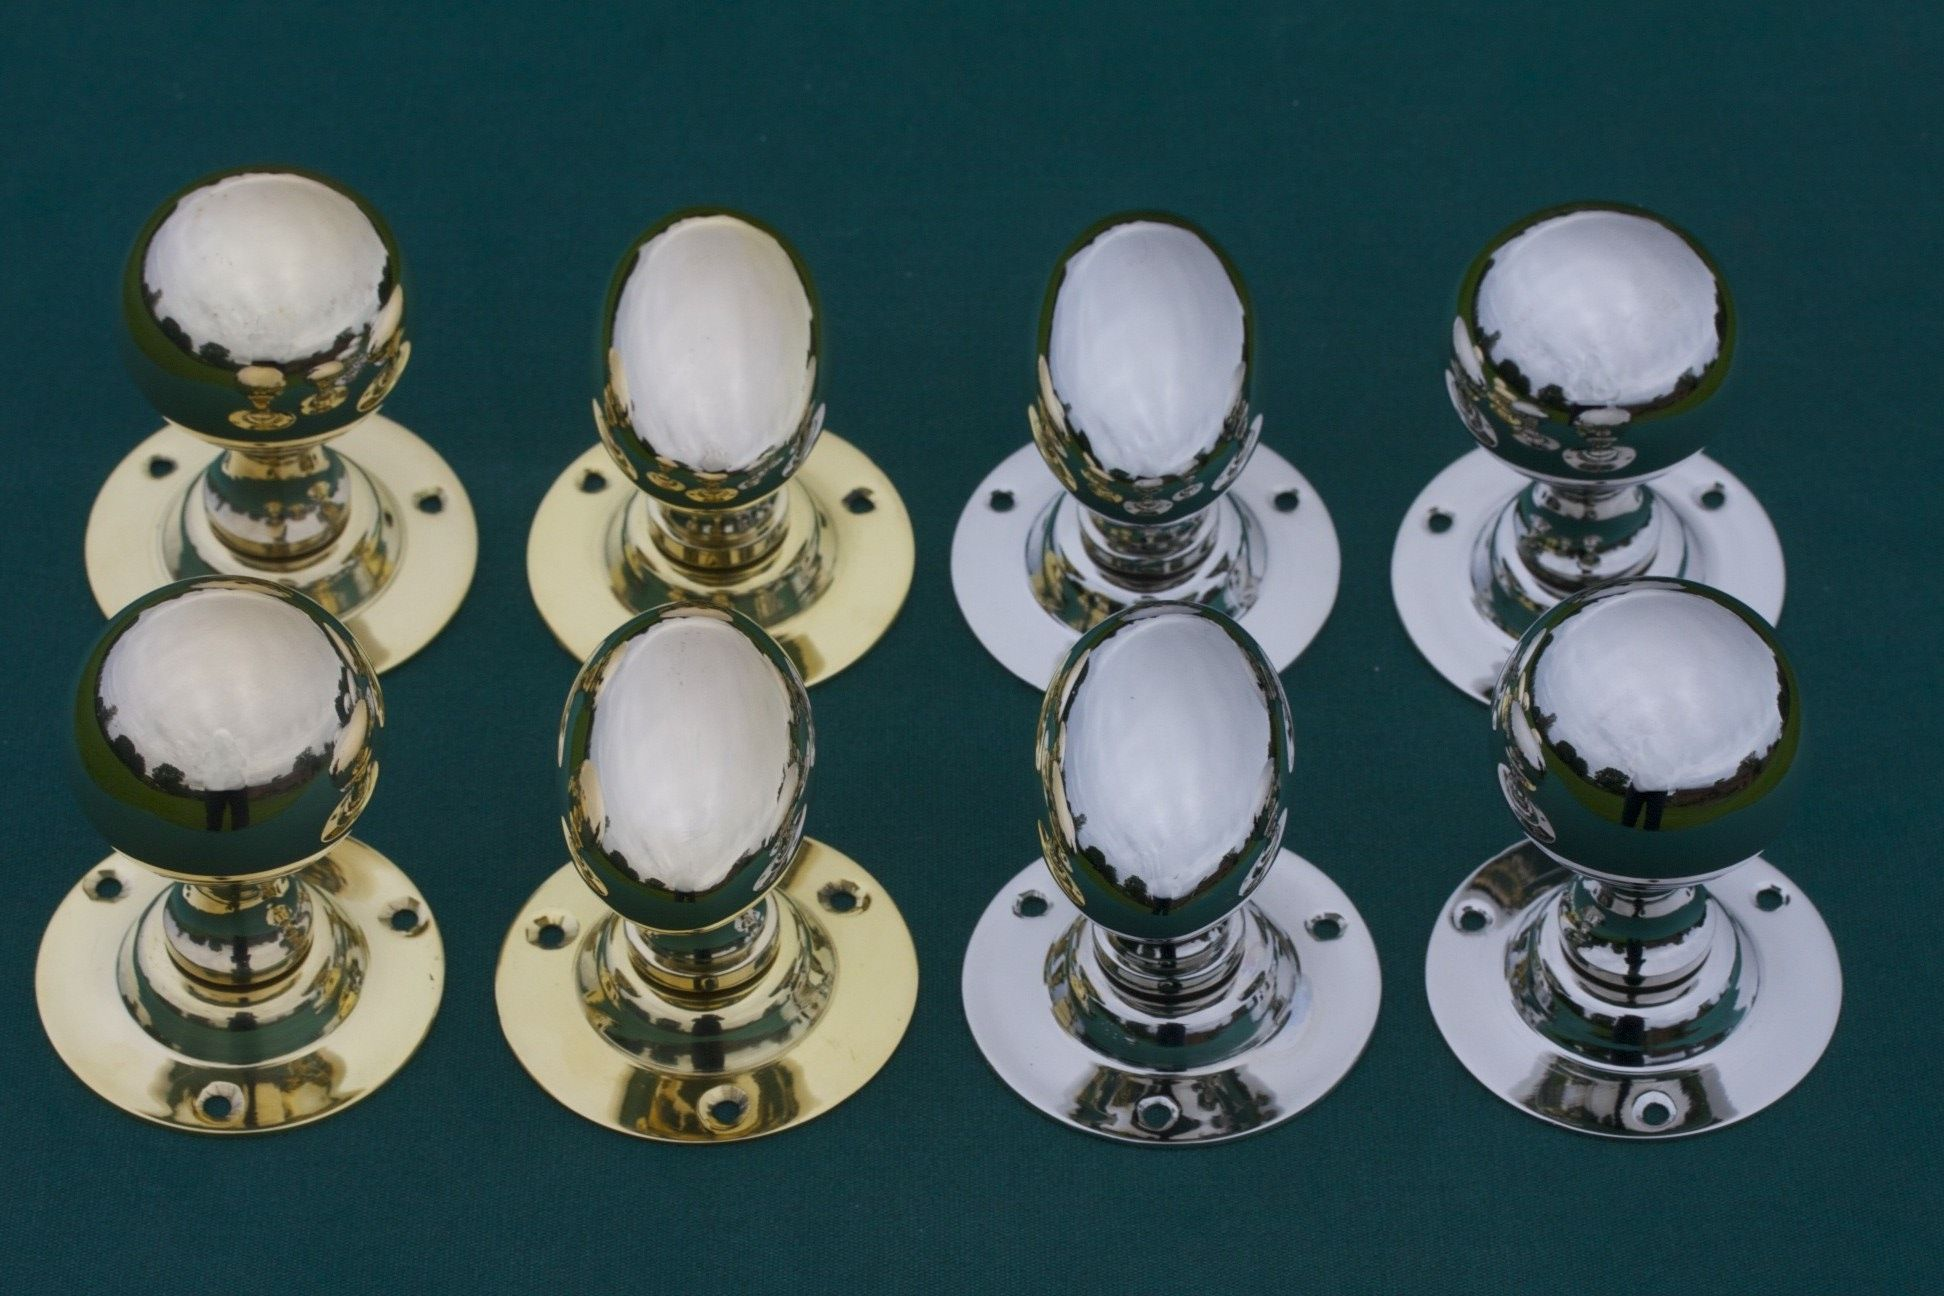 Classic door knob shapes oval and round ball. Shown in brass and ...